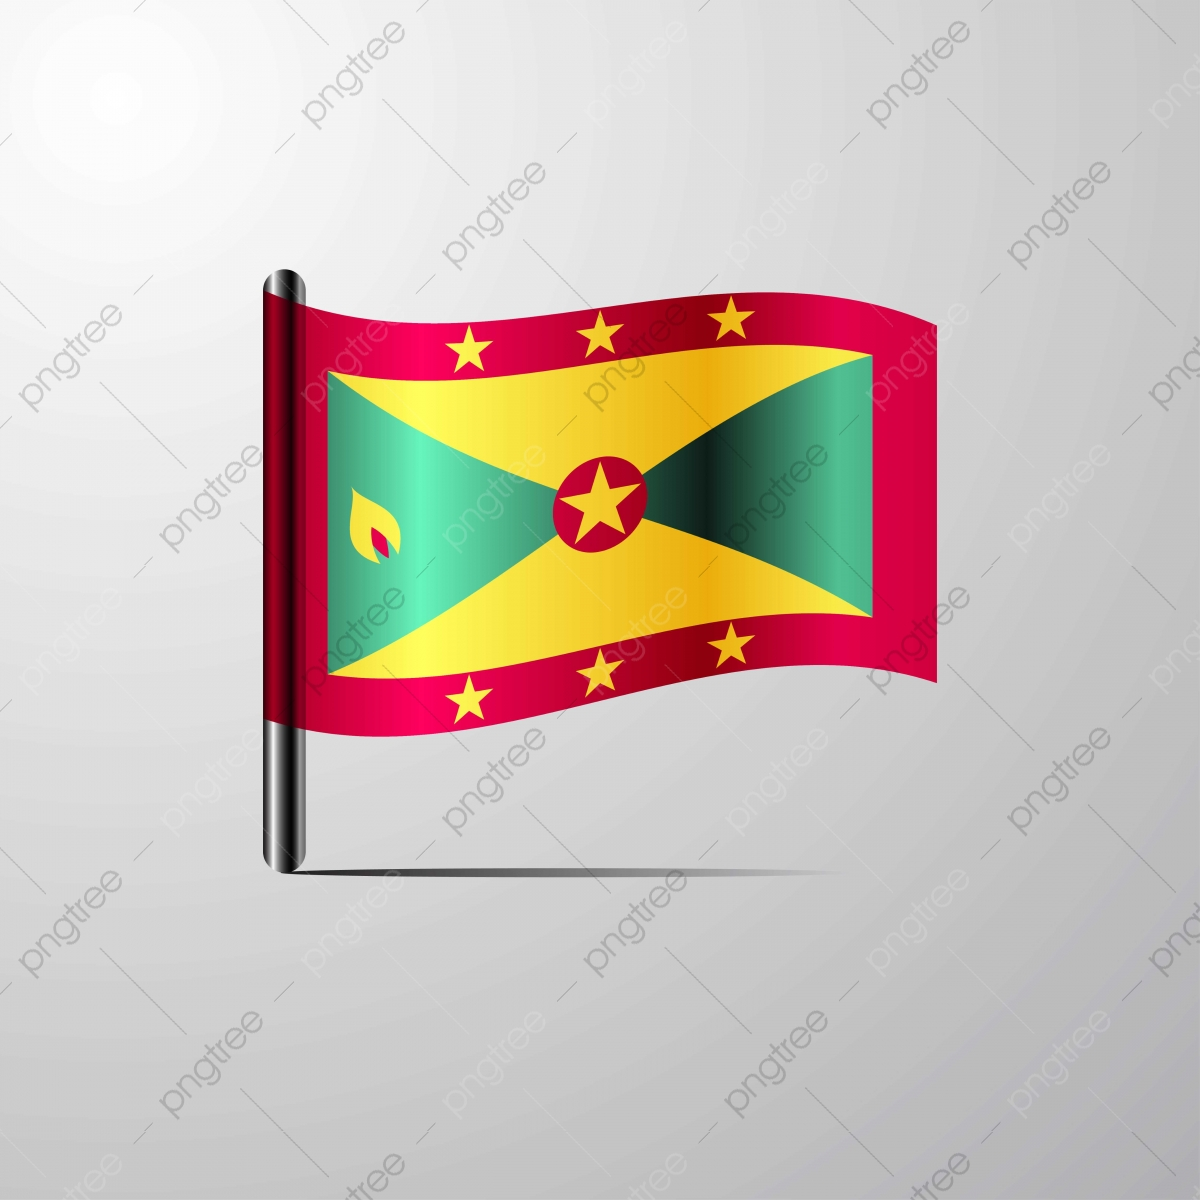 Grenada Png Images Vector And Psd Files Free Download On Pngtree